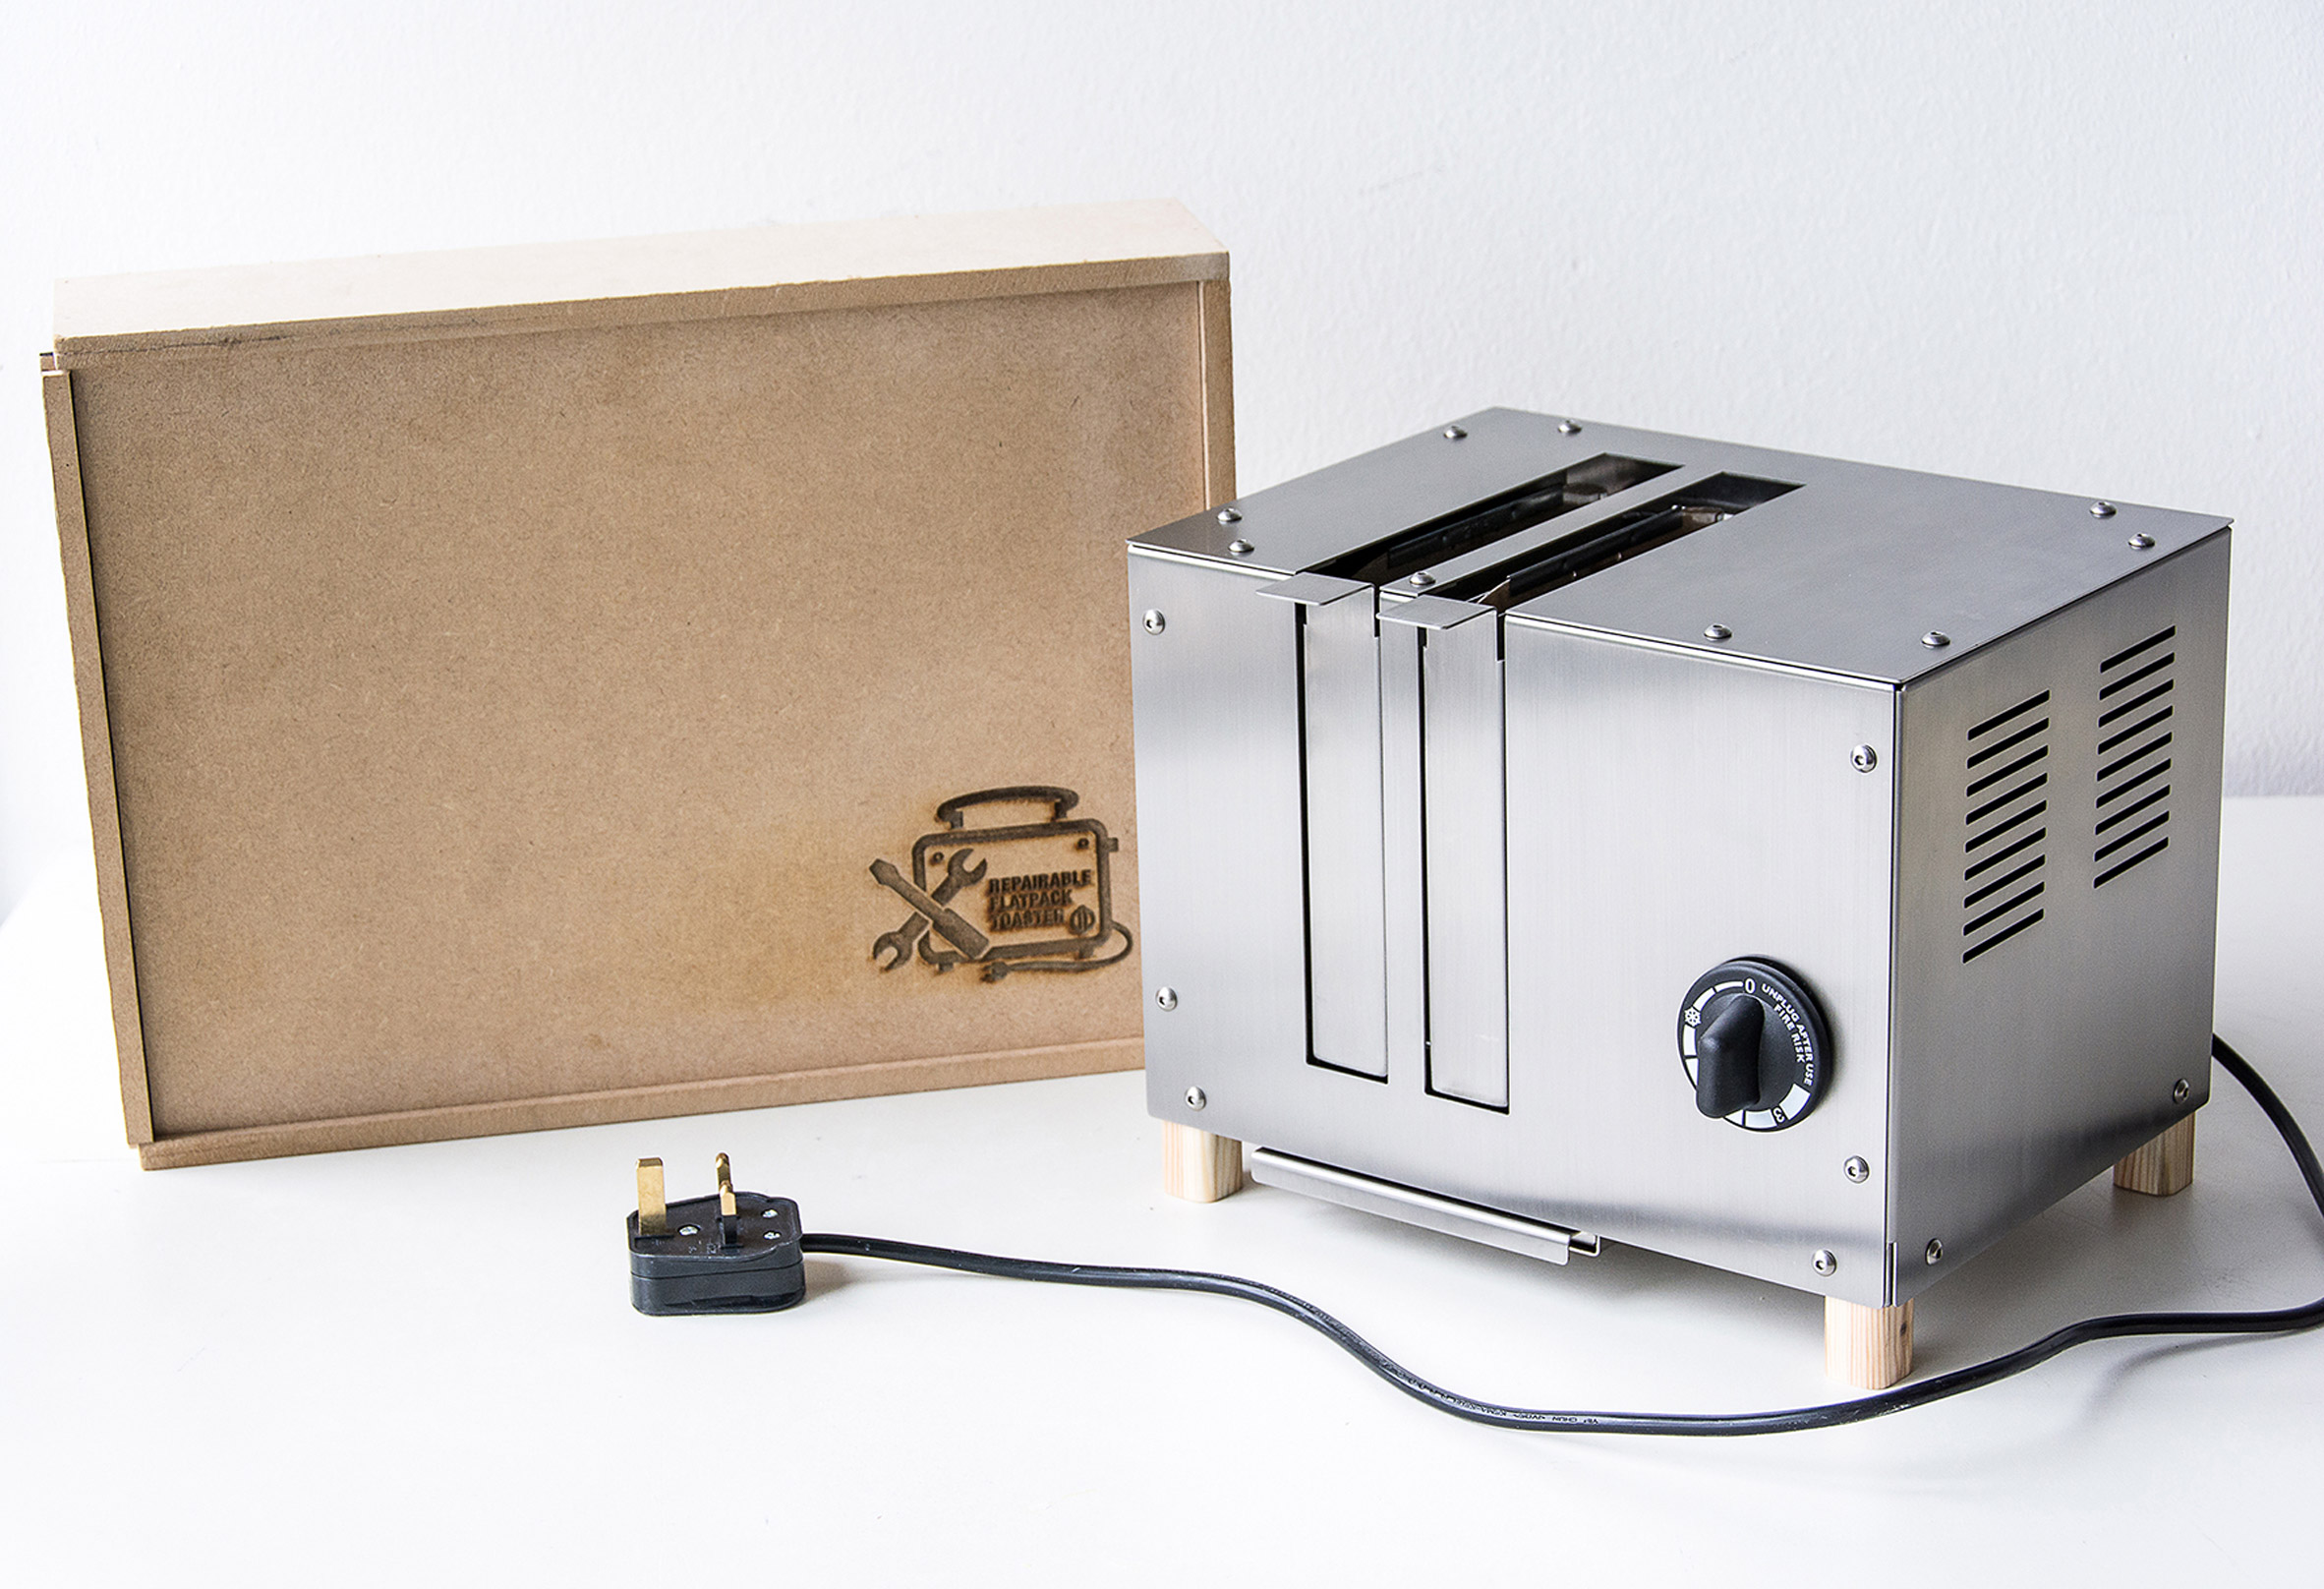 Kasey Hou aims to reduce electrical waste with flat-pack repairable toaster